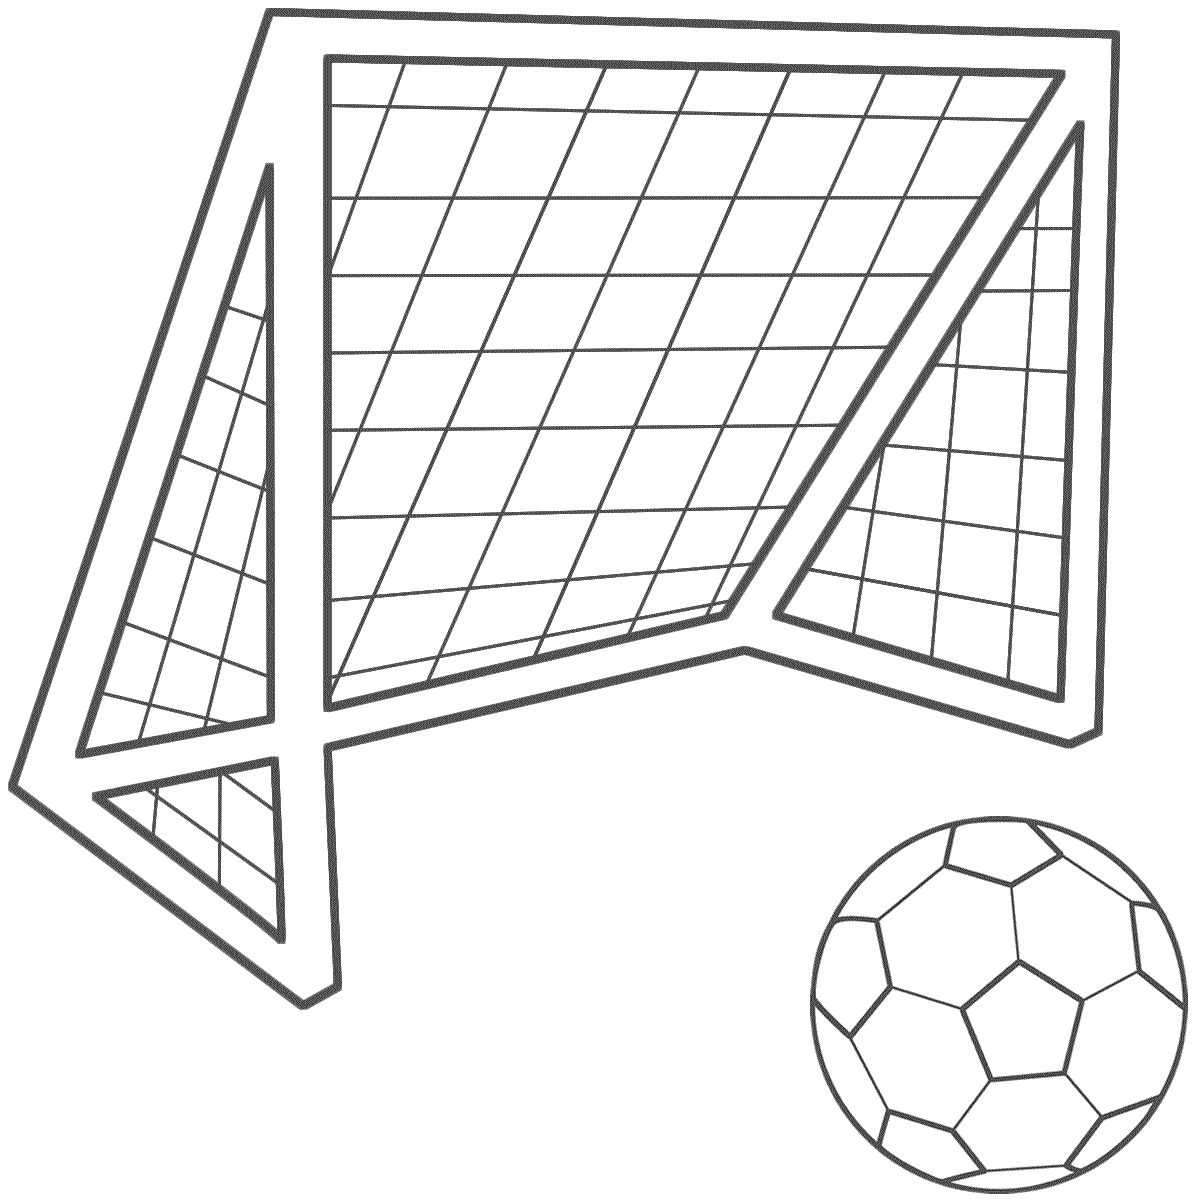 Uncategorized Coloring Pages.net soccer ball with a net coloring page sports home sports